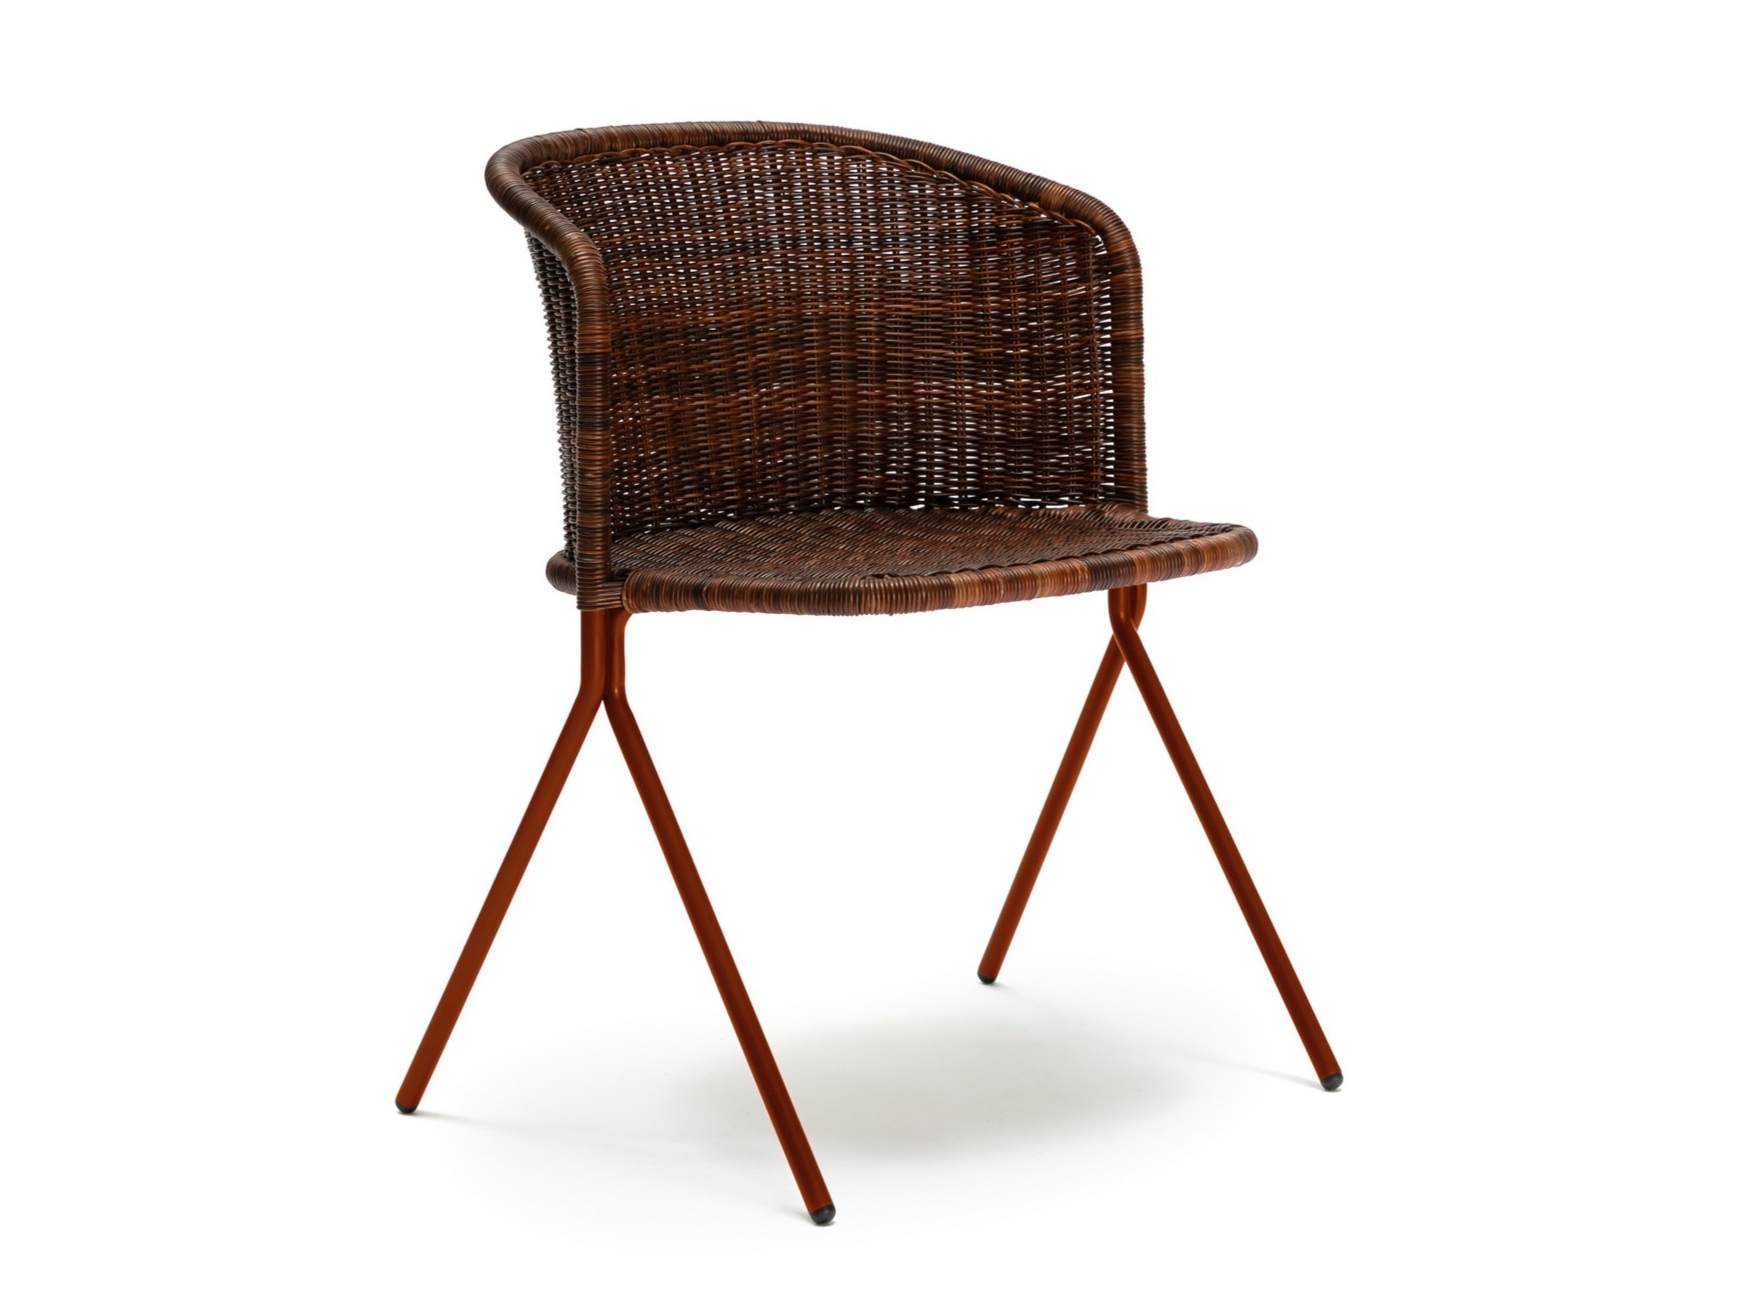 The Kakī Armchair